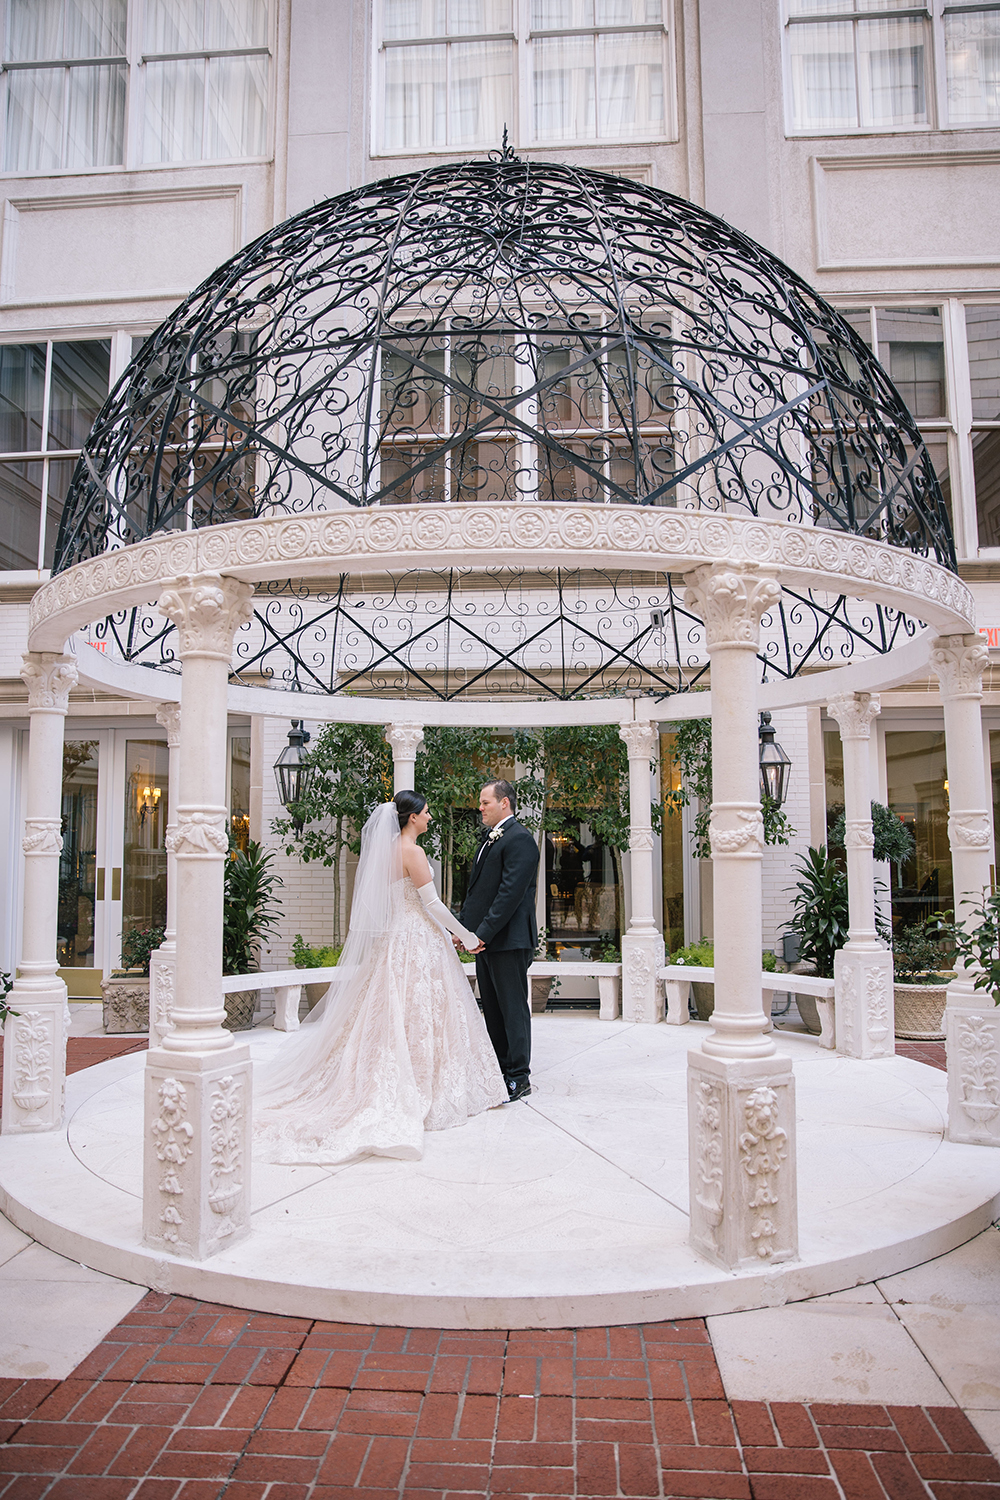 Francesca and Stanton's first look in the Ritz Carlton's courtyard.